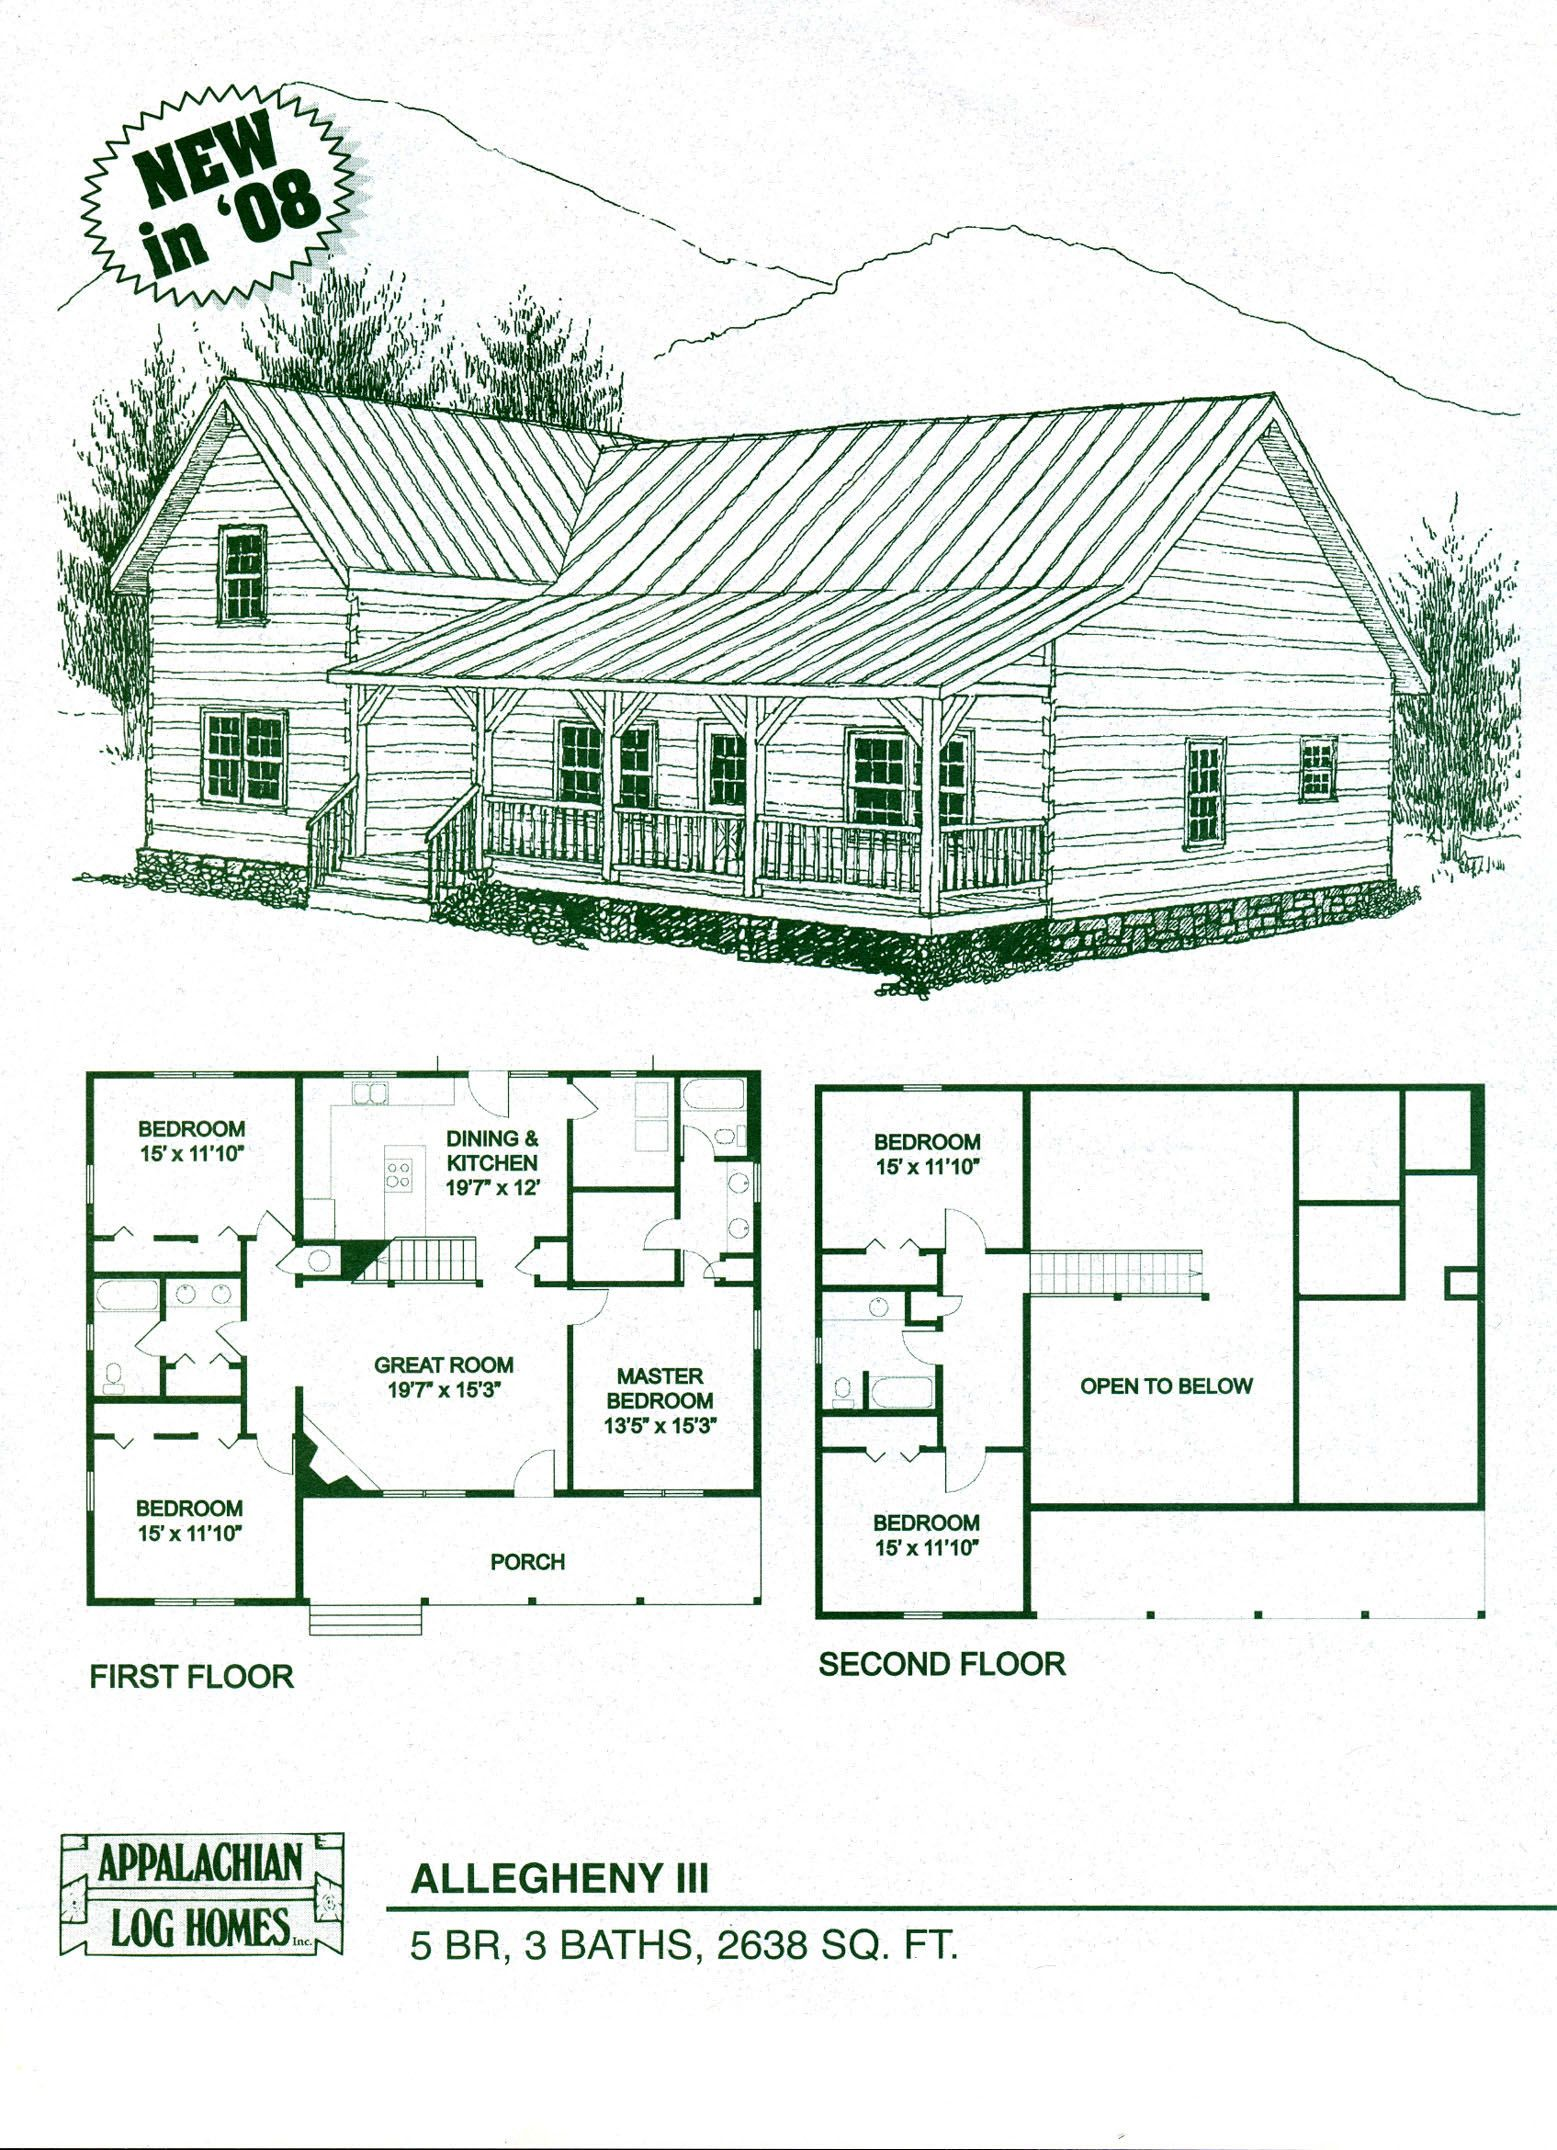 Log home floor plans log cabin kits appalachian log Lodge floor plans